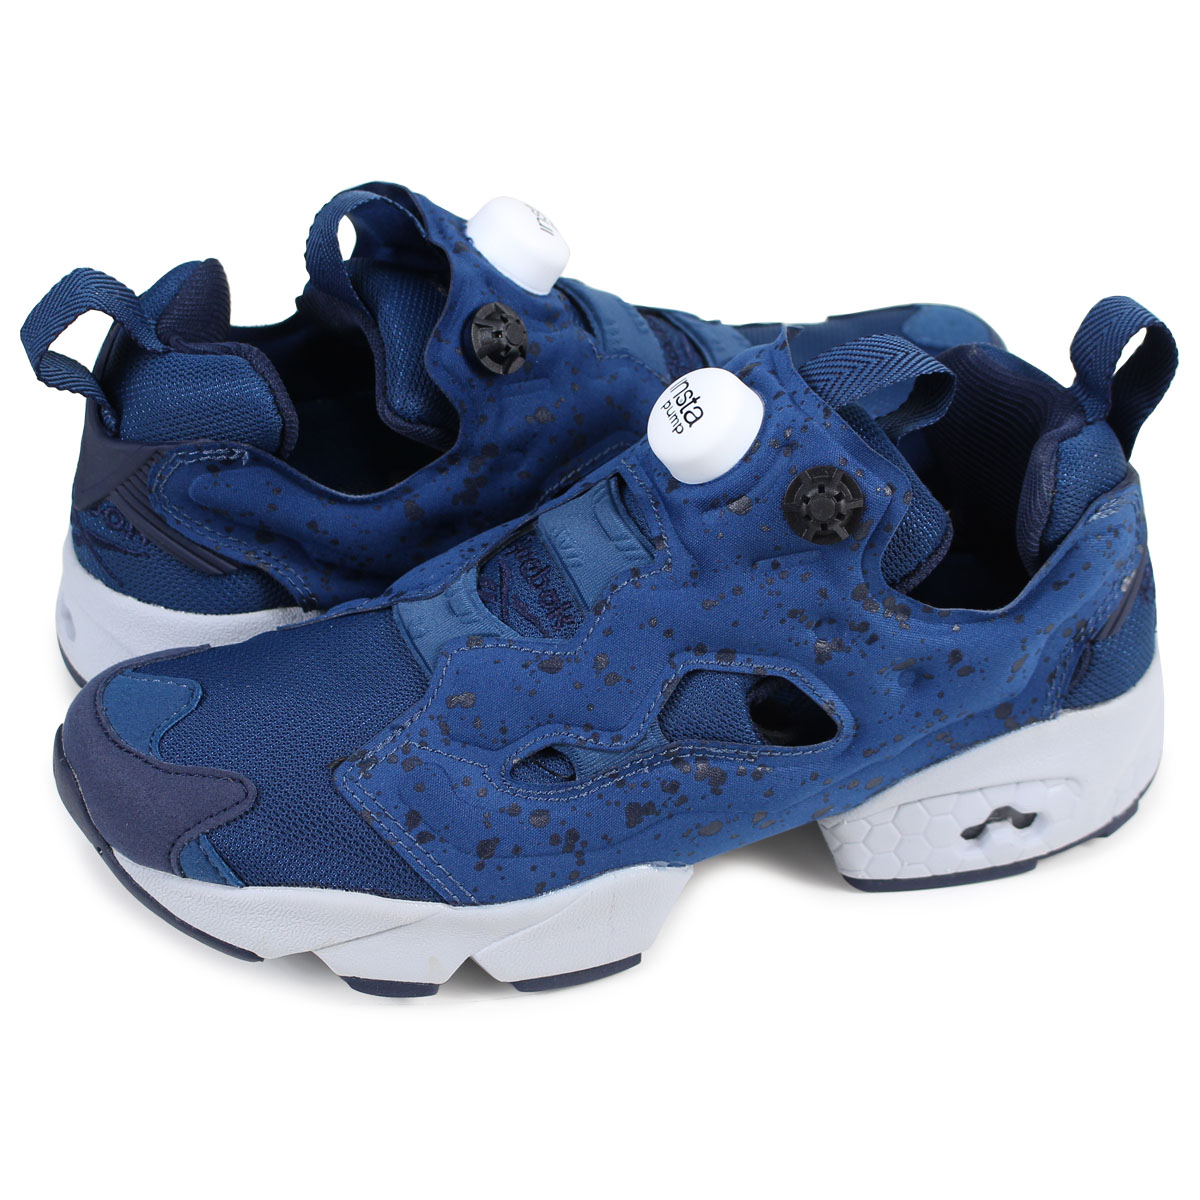 bc783c3c1acb Reebok INSTAPUMP FURY SP リーボックポンプフューリーメンズレディーススニーカー AQ9800 blue  load  planned Shinnyu load in reservation product 1 26 containing